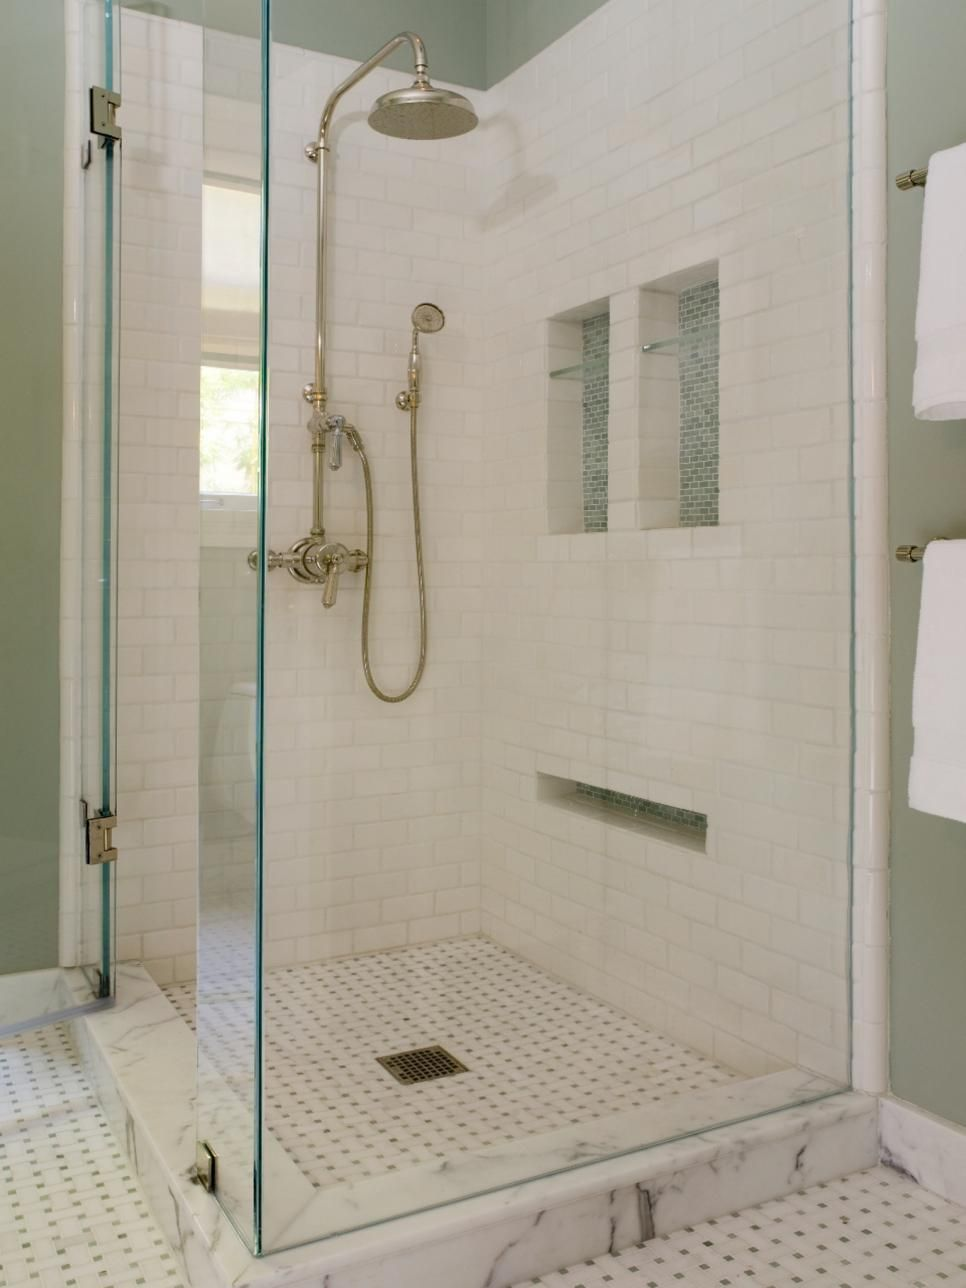 This Bathroom Has A Sleek Design With High End Finishes The Walk